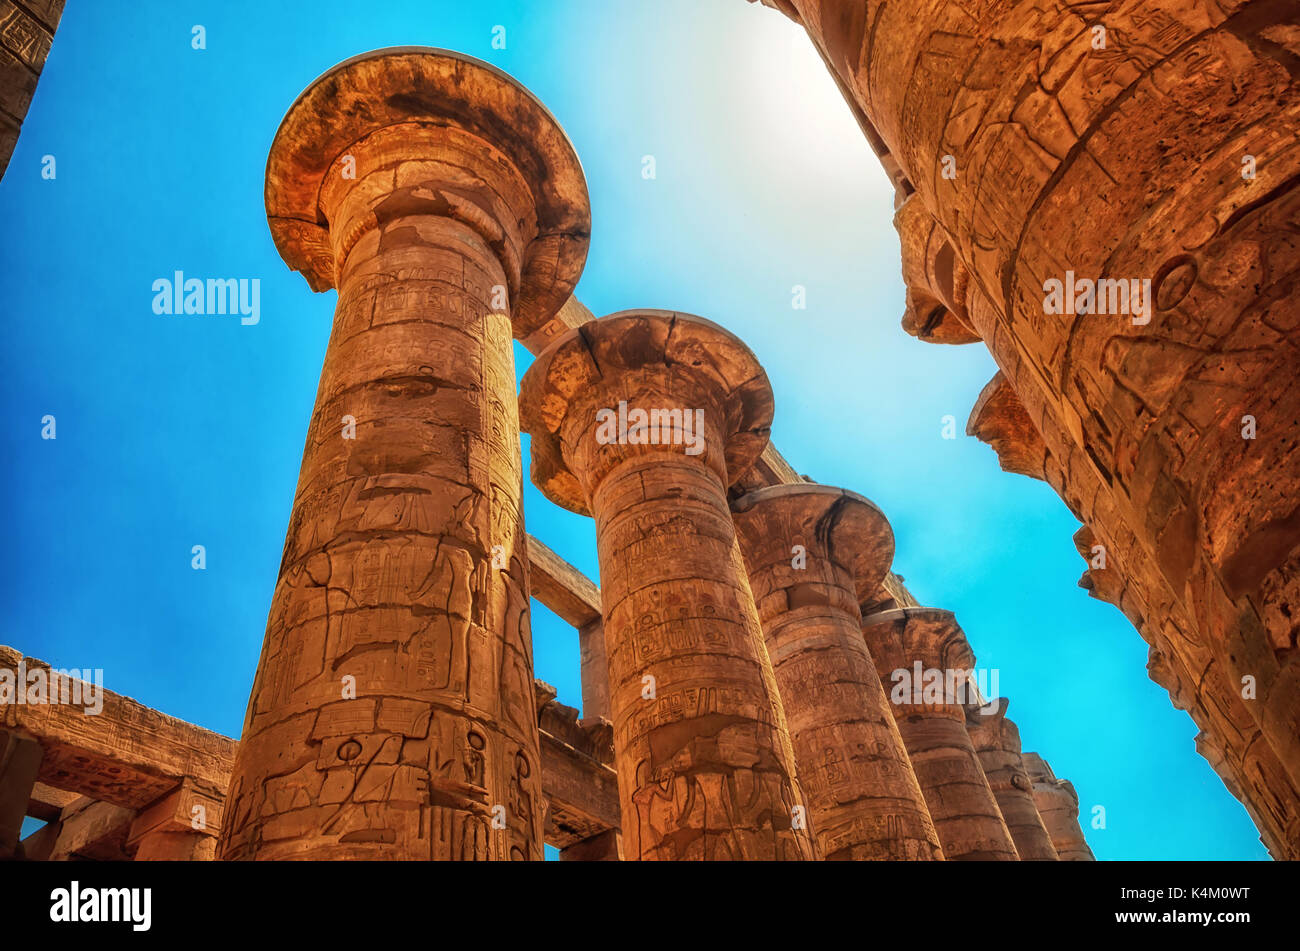 Great Hypostyle Hall at the Temples of Karnak (ancient Thebes). Luxor, Egypt - Stock Image